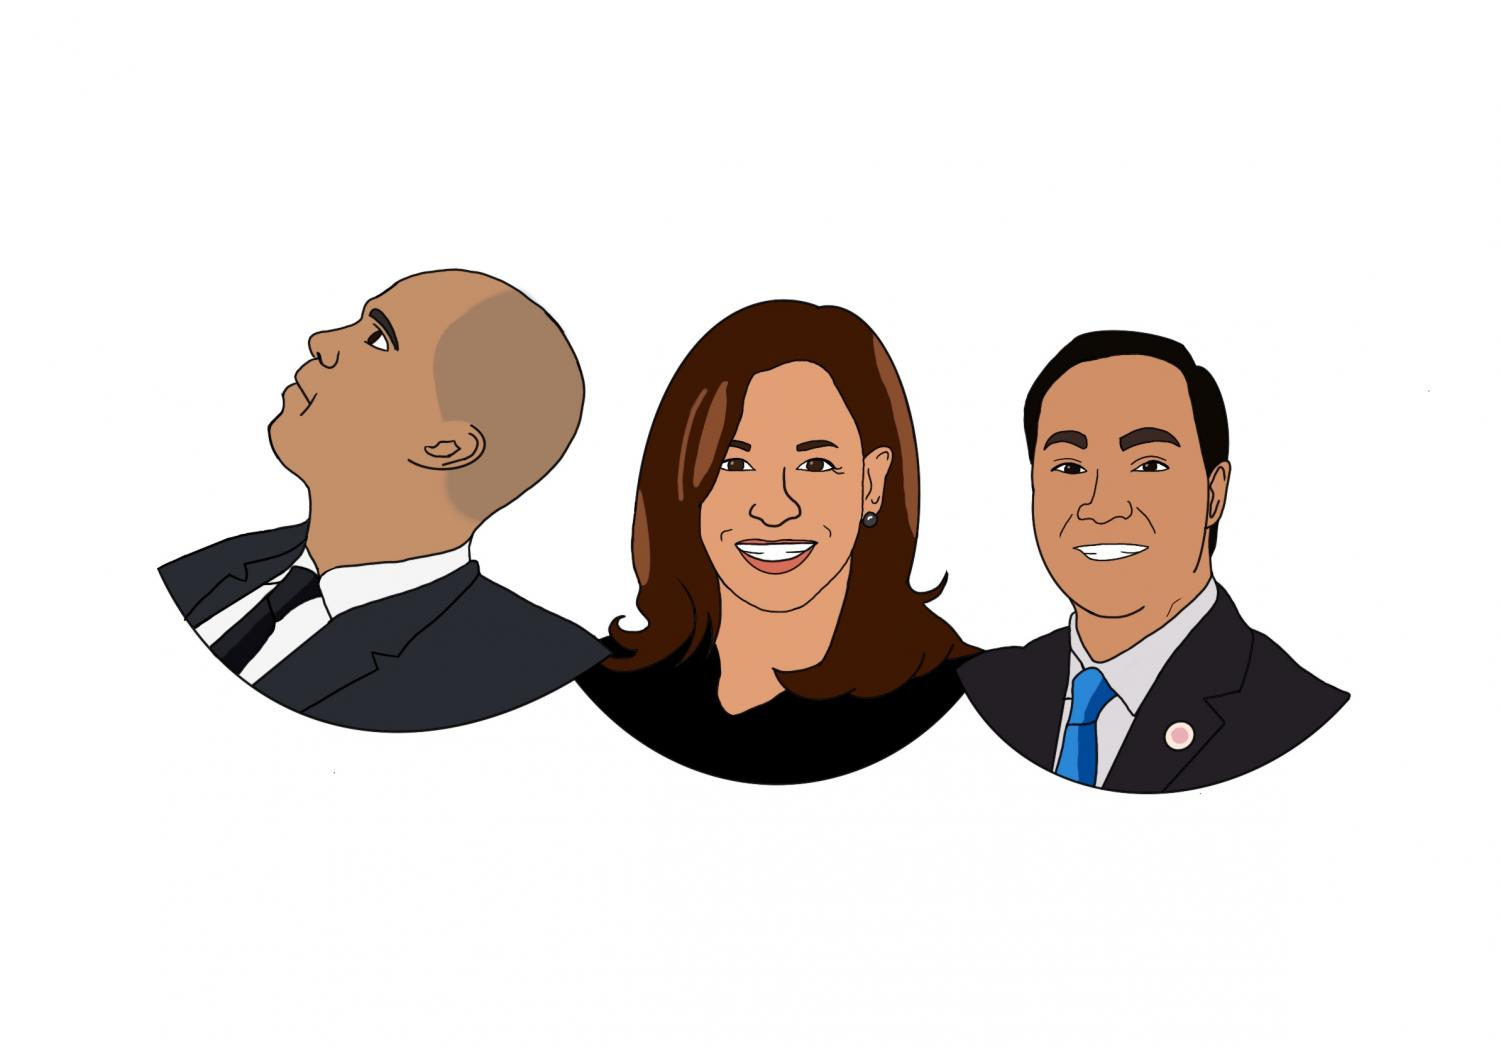 Cory Booker, Kamala Harris, and Julian Castro are candidates of color who did not qualify for the December Democratic presidential debate.